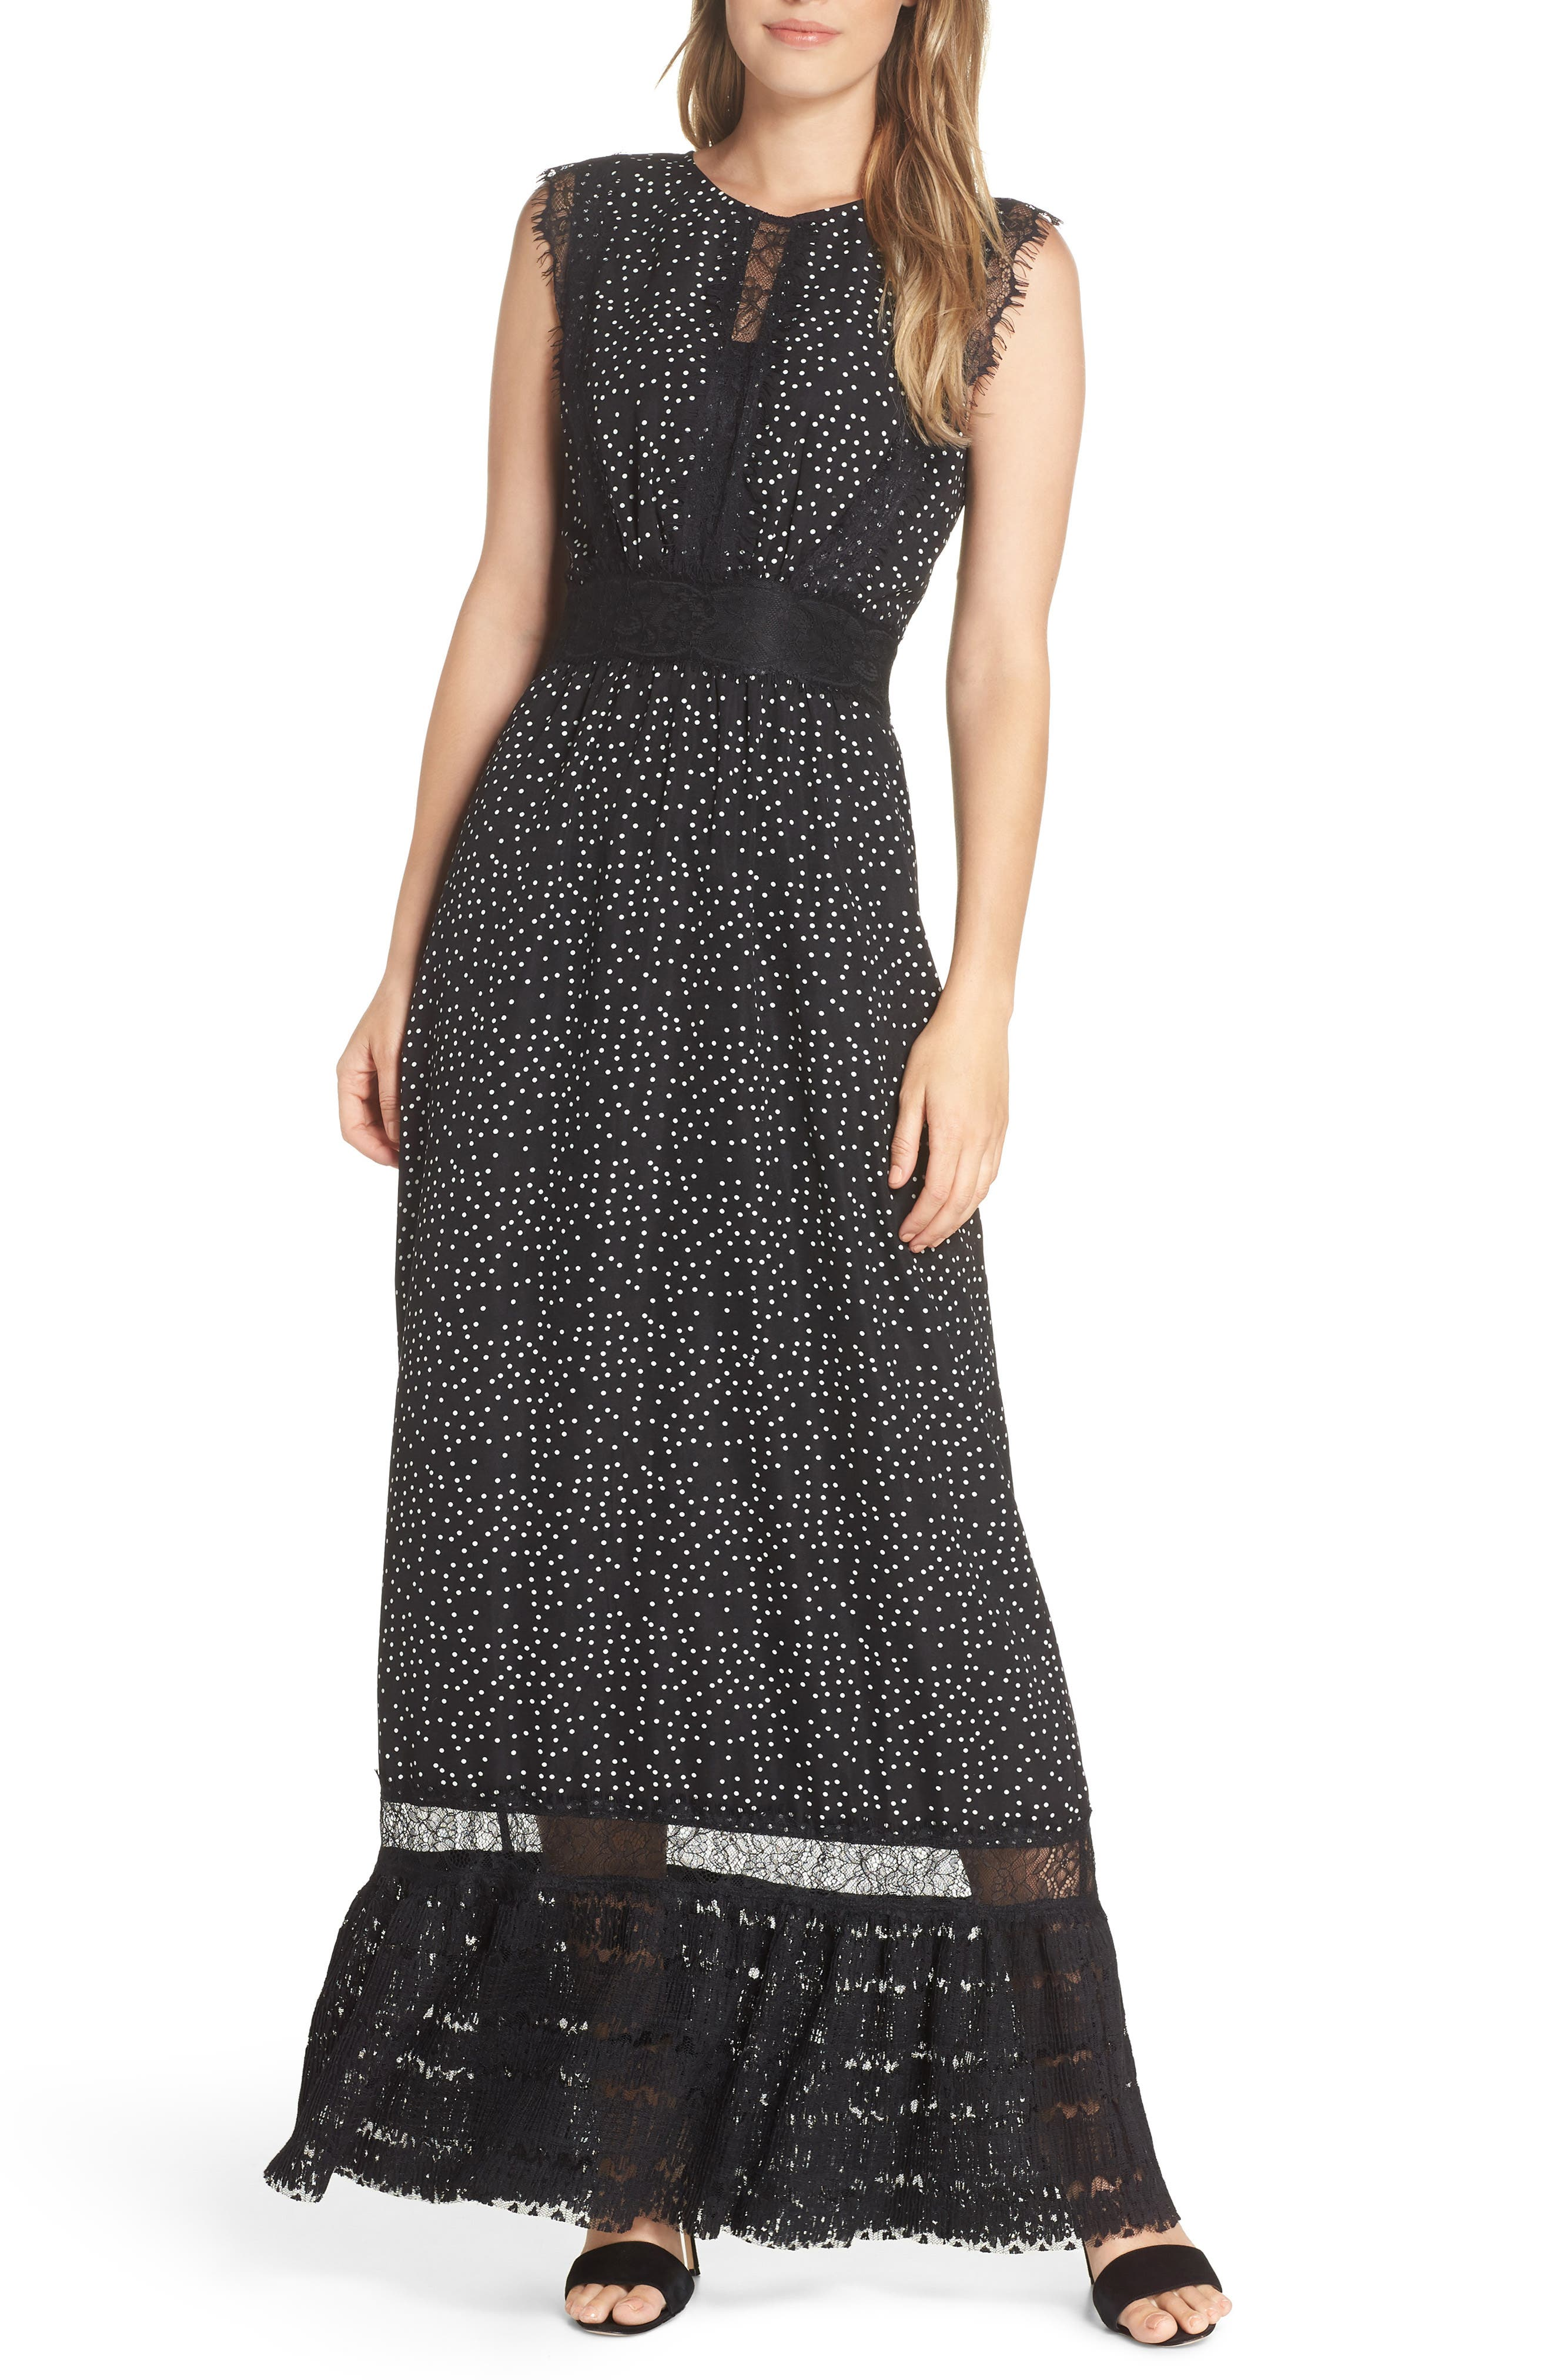 ADELYN RAE Georgette Maxi Dress in Black-White